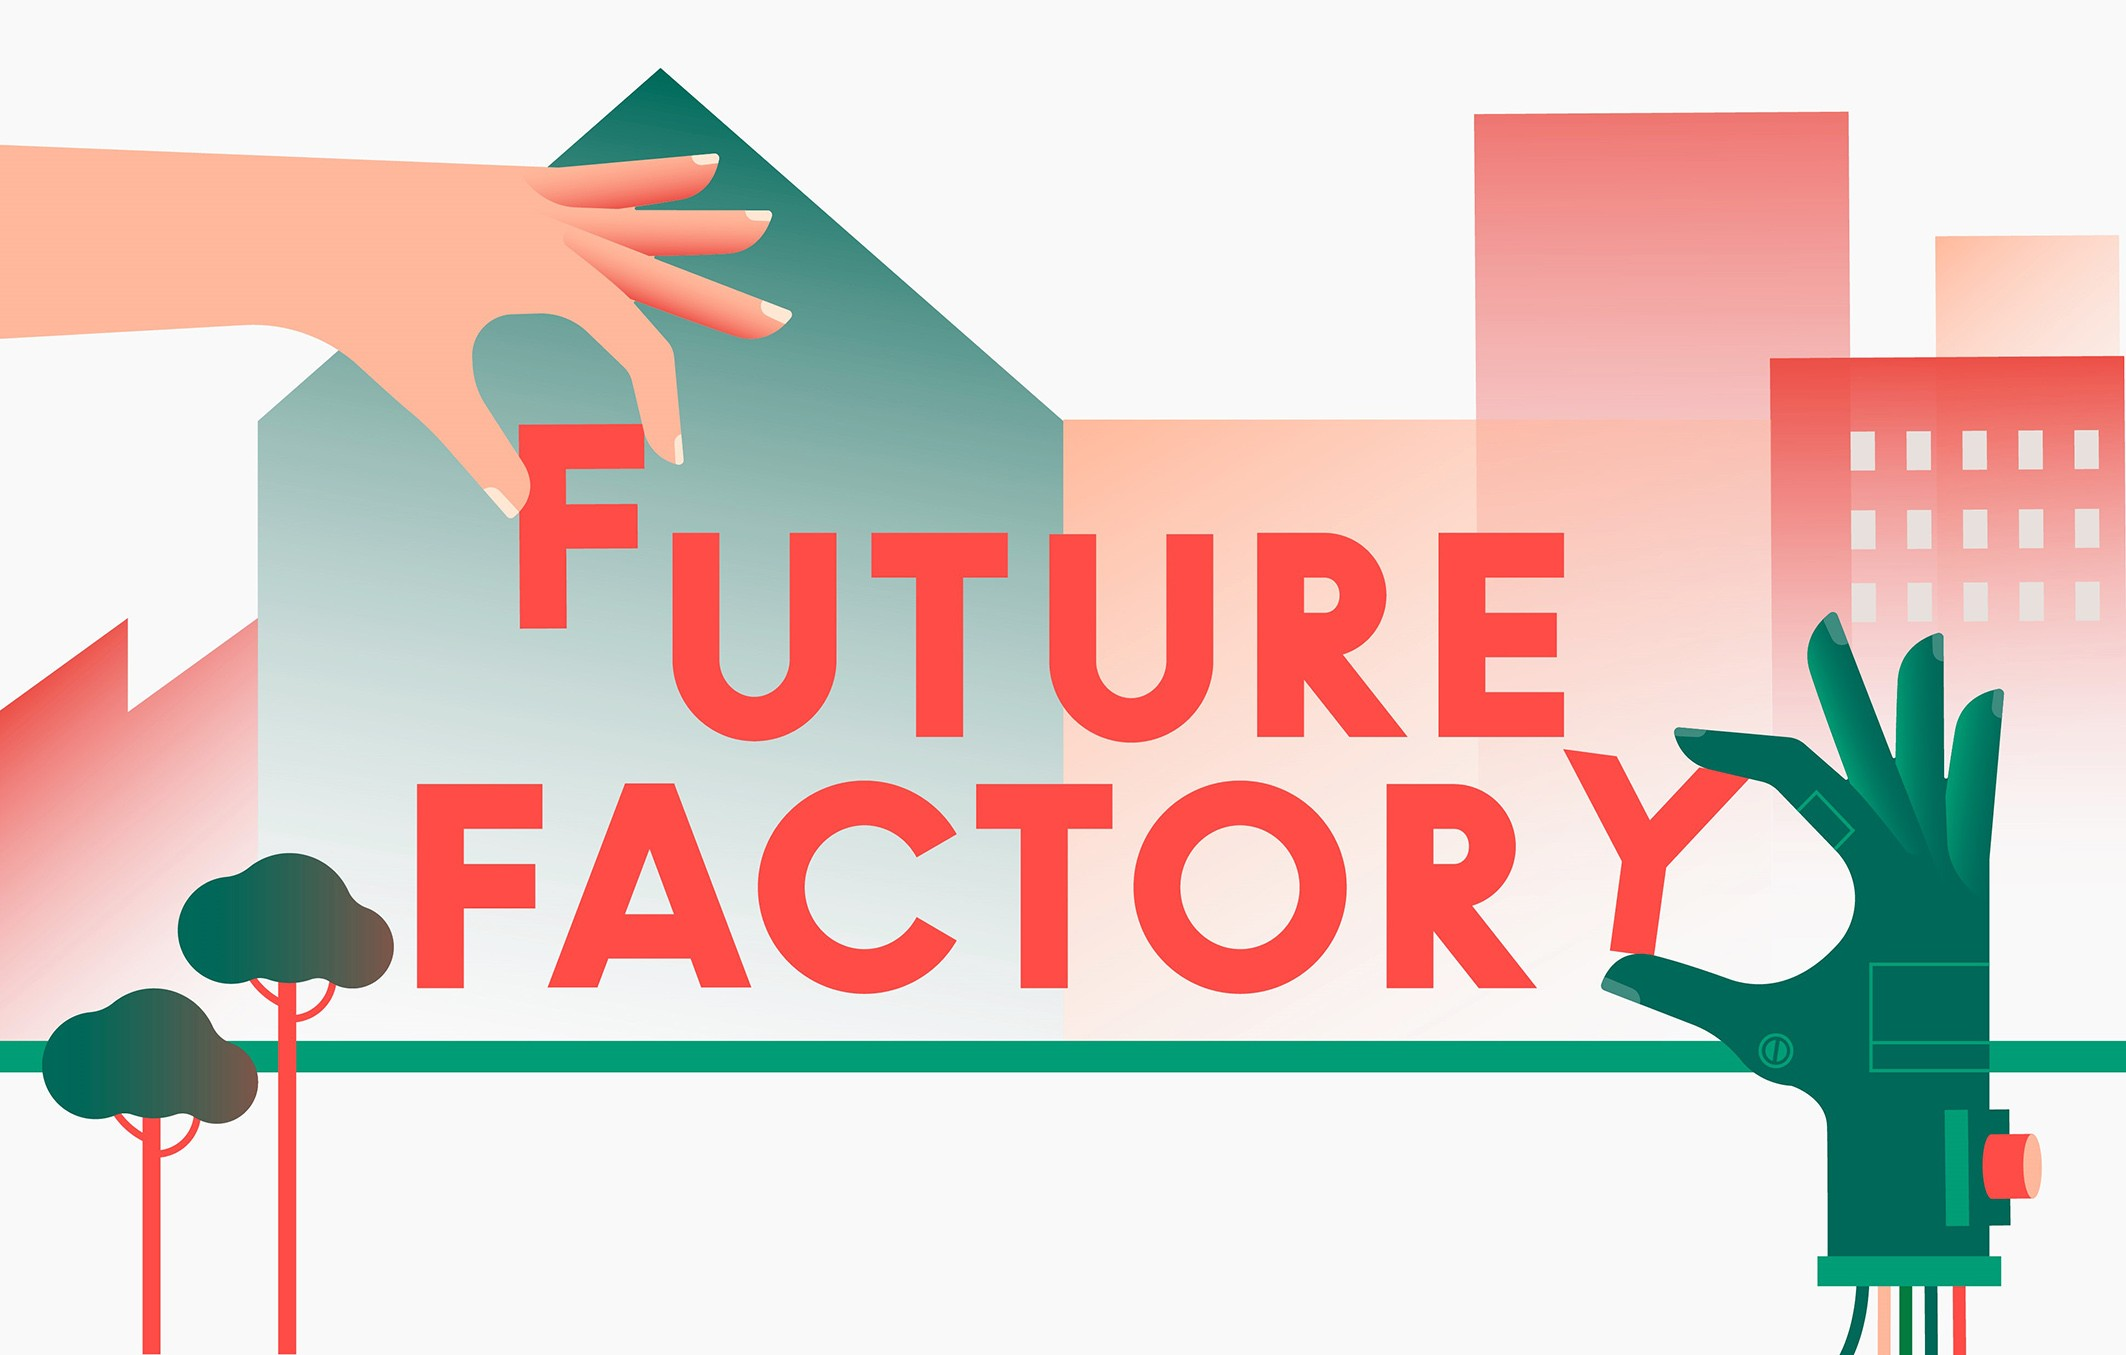 <BODY><em>FUTURE FACTORY<br />Rethinking Urban Production</em><br />Future Factory<br />© buero bauer</BODY>